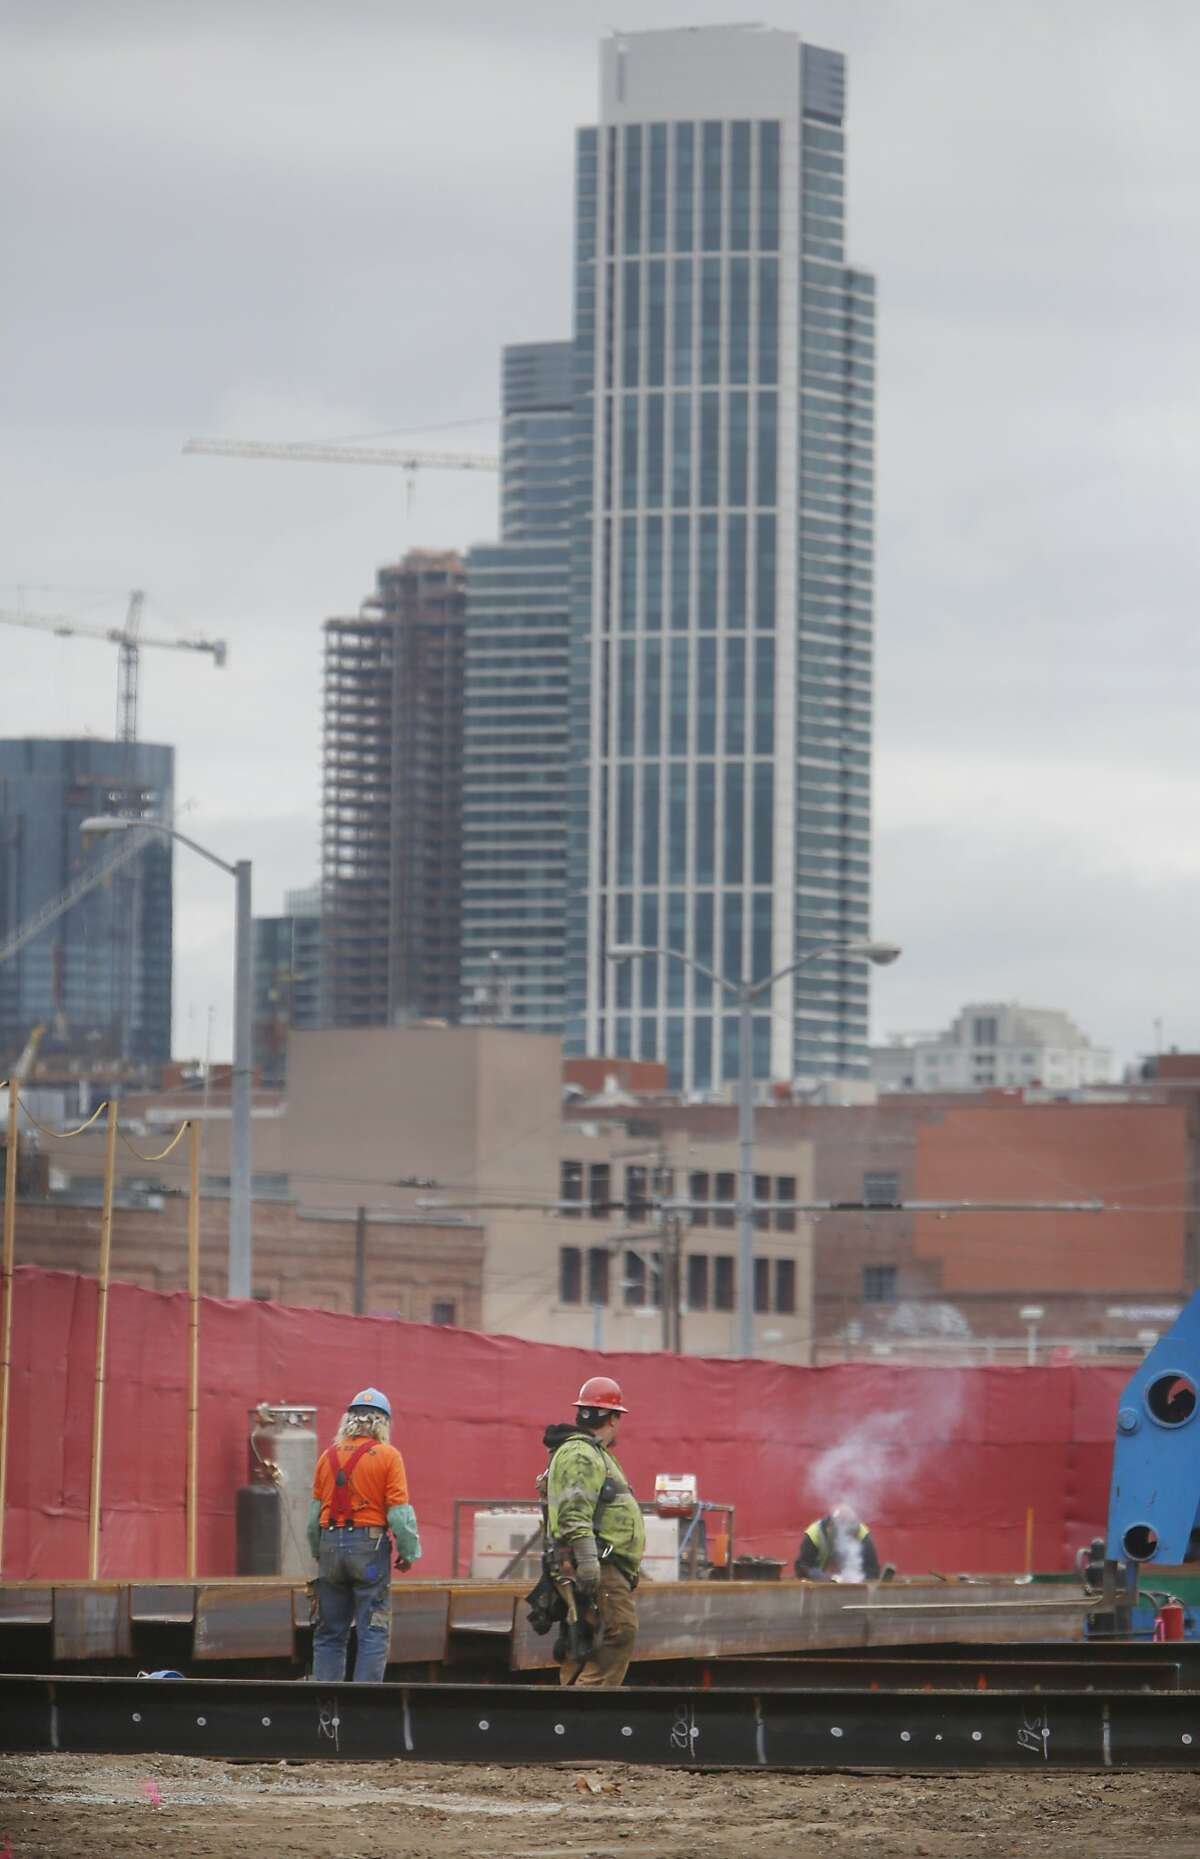 Suffolk Construction laborers work at the construction site at 360 Berry Street on Thursday, May 21, 2015 in San Francisco, Calif.